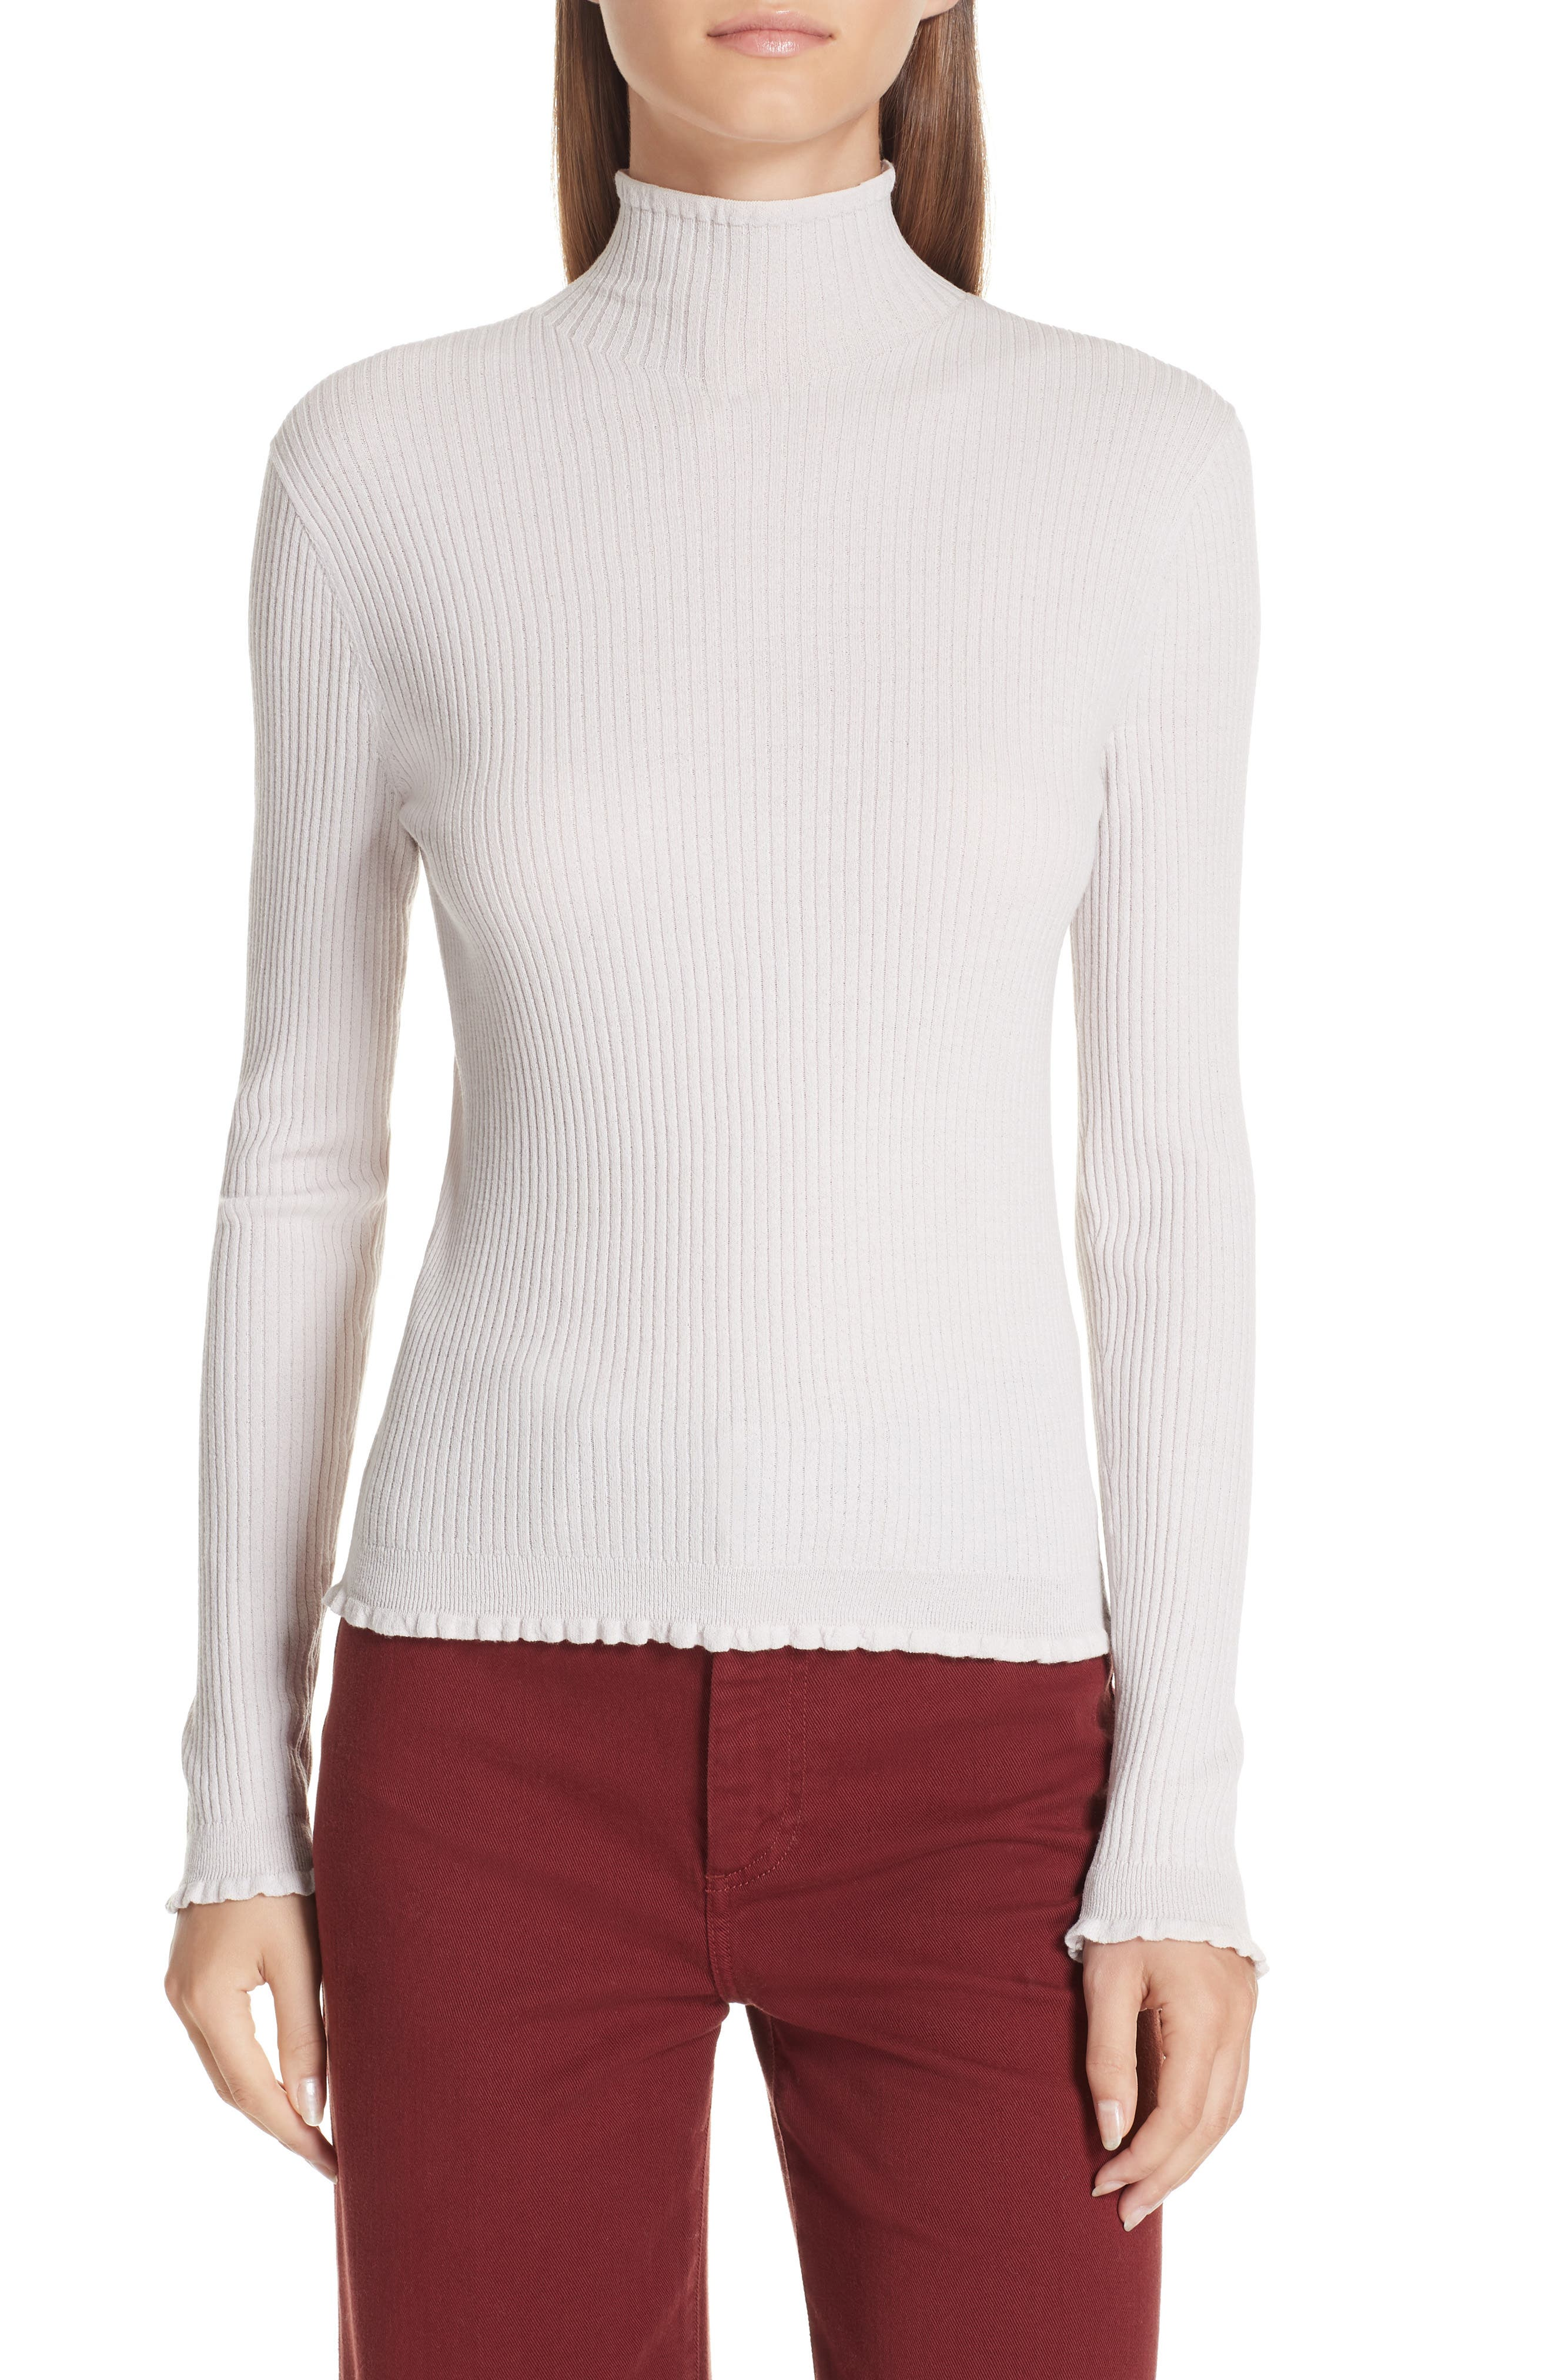 VINCE Lettuce Edge Mock Neck Merino Wool Sweater, Main, color, STUCCO